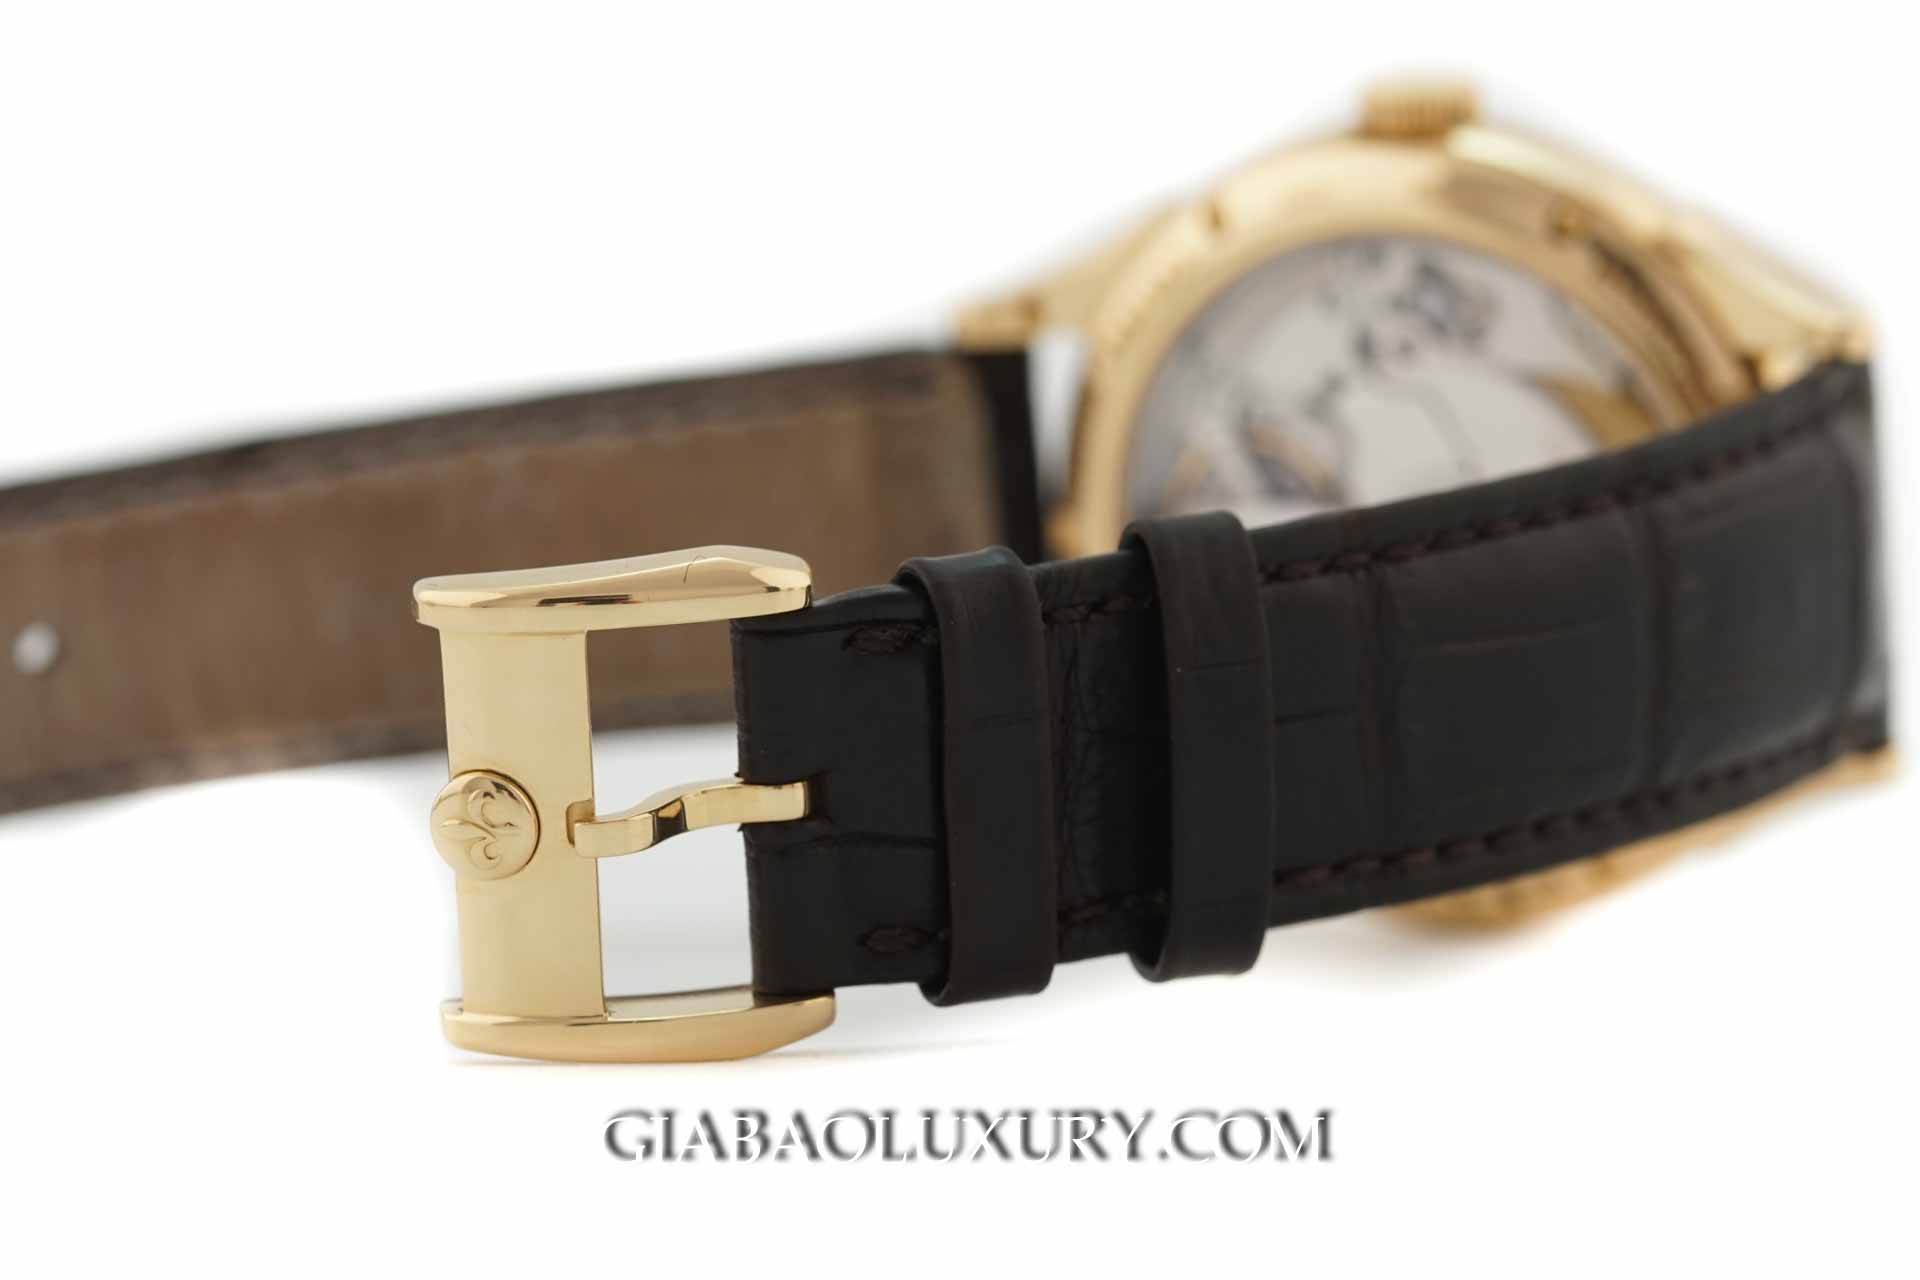 Đồng Hồ Pequignet Rue Royale Moonphase Yellow Gold